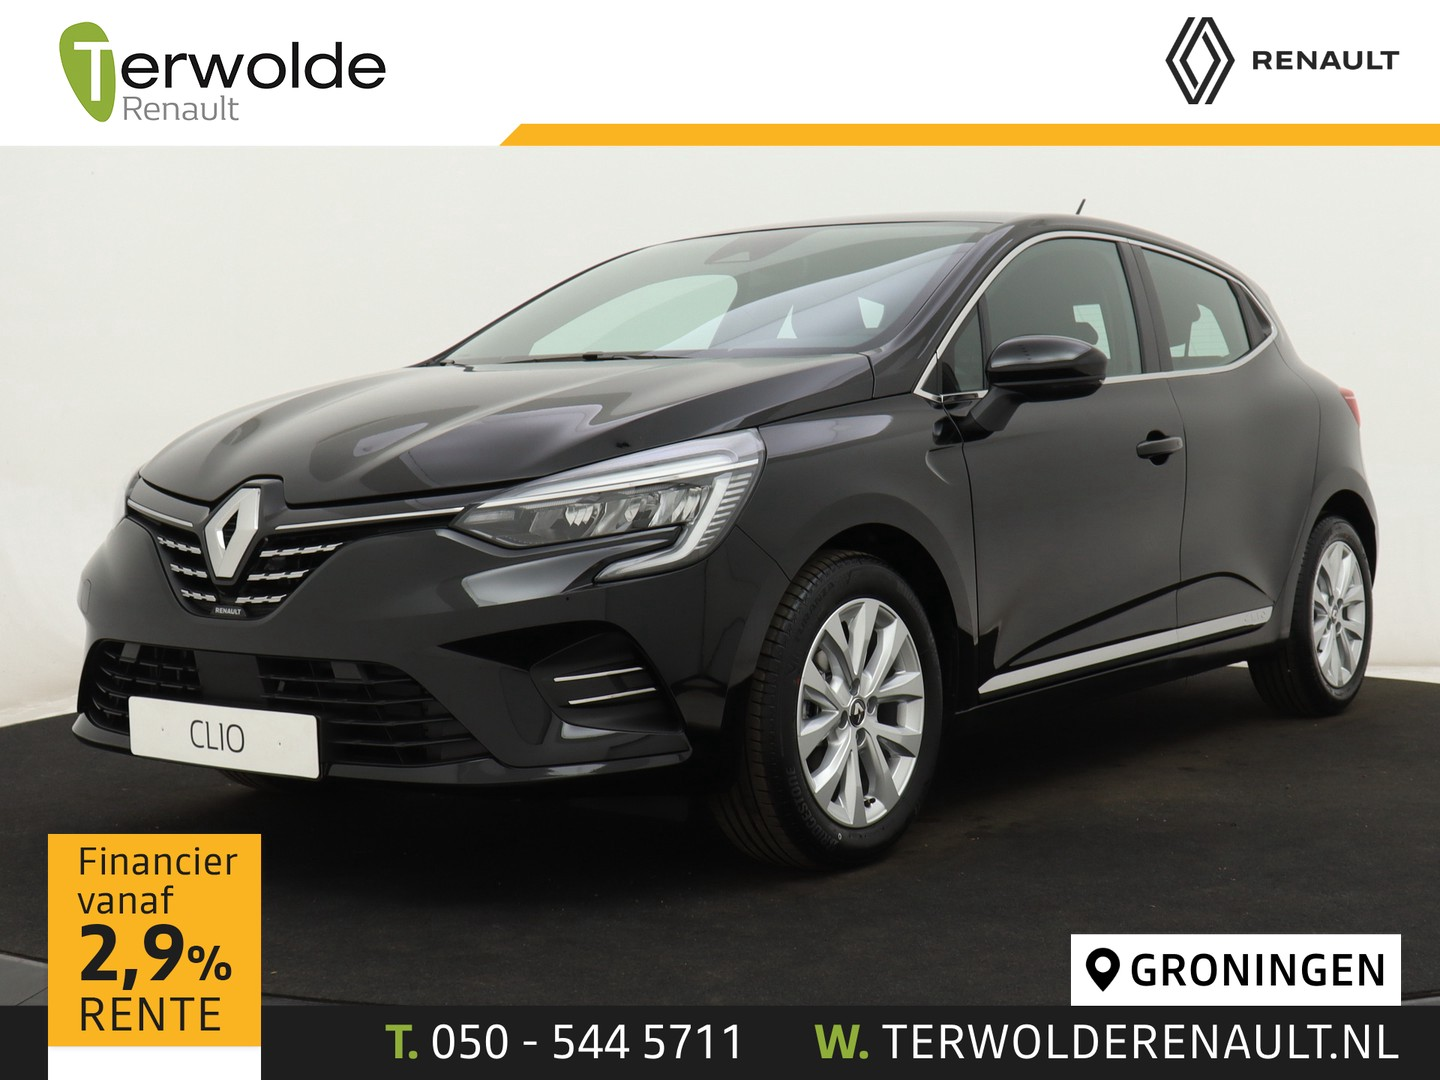 Renault Clio 1.0 tce intens demo